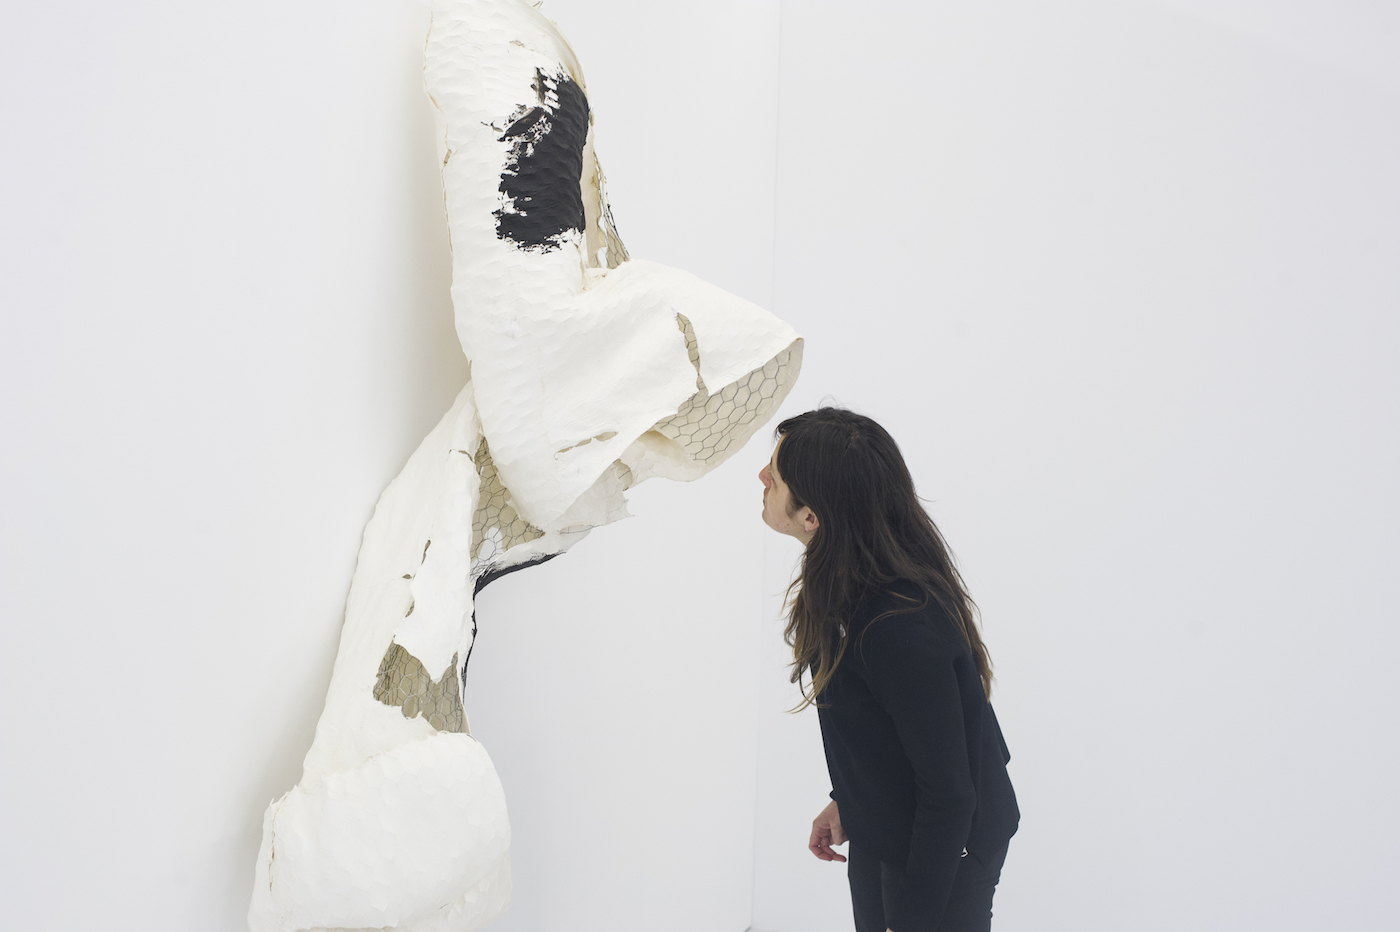 """Lynda Benglis, """"Something Else"""" (2015), handmade paper over chicken wire, coal dust, paint, acrylic, glitter, in 'Double Albatross' at the Kunstgarasjen for Bergen Assembly 2016 (photo by Thor Brødreskift, all photos courtesy Bergen Assembly)"""